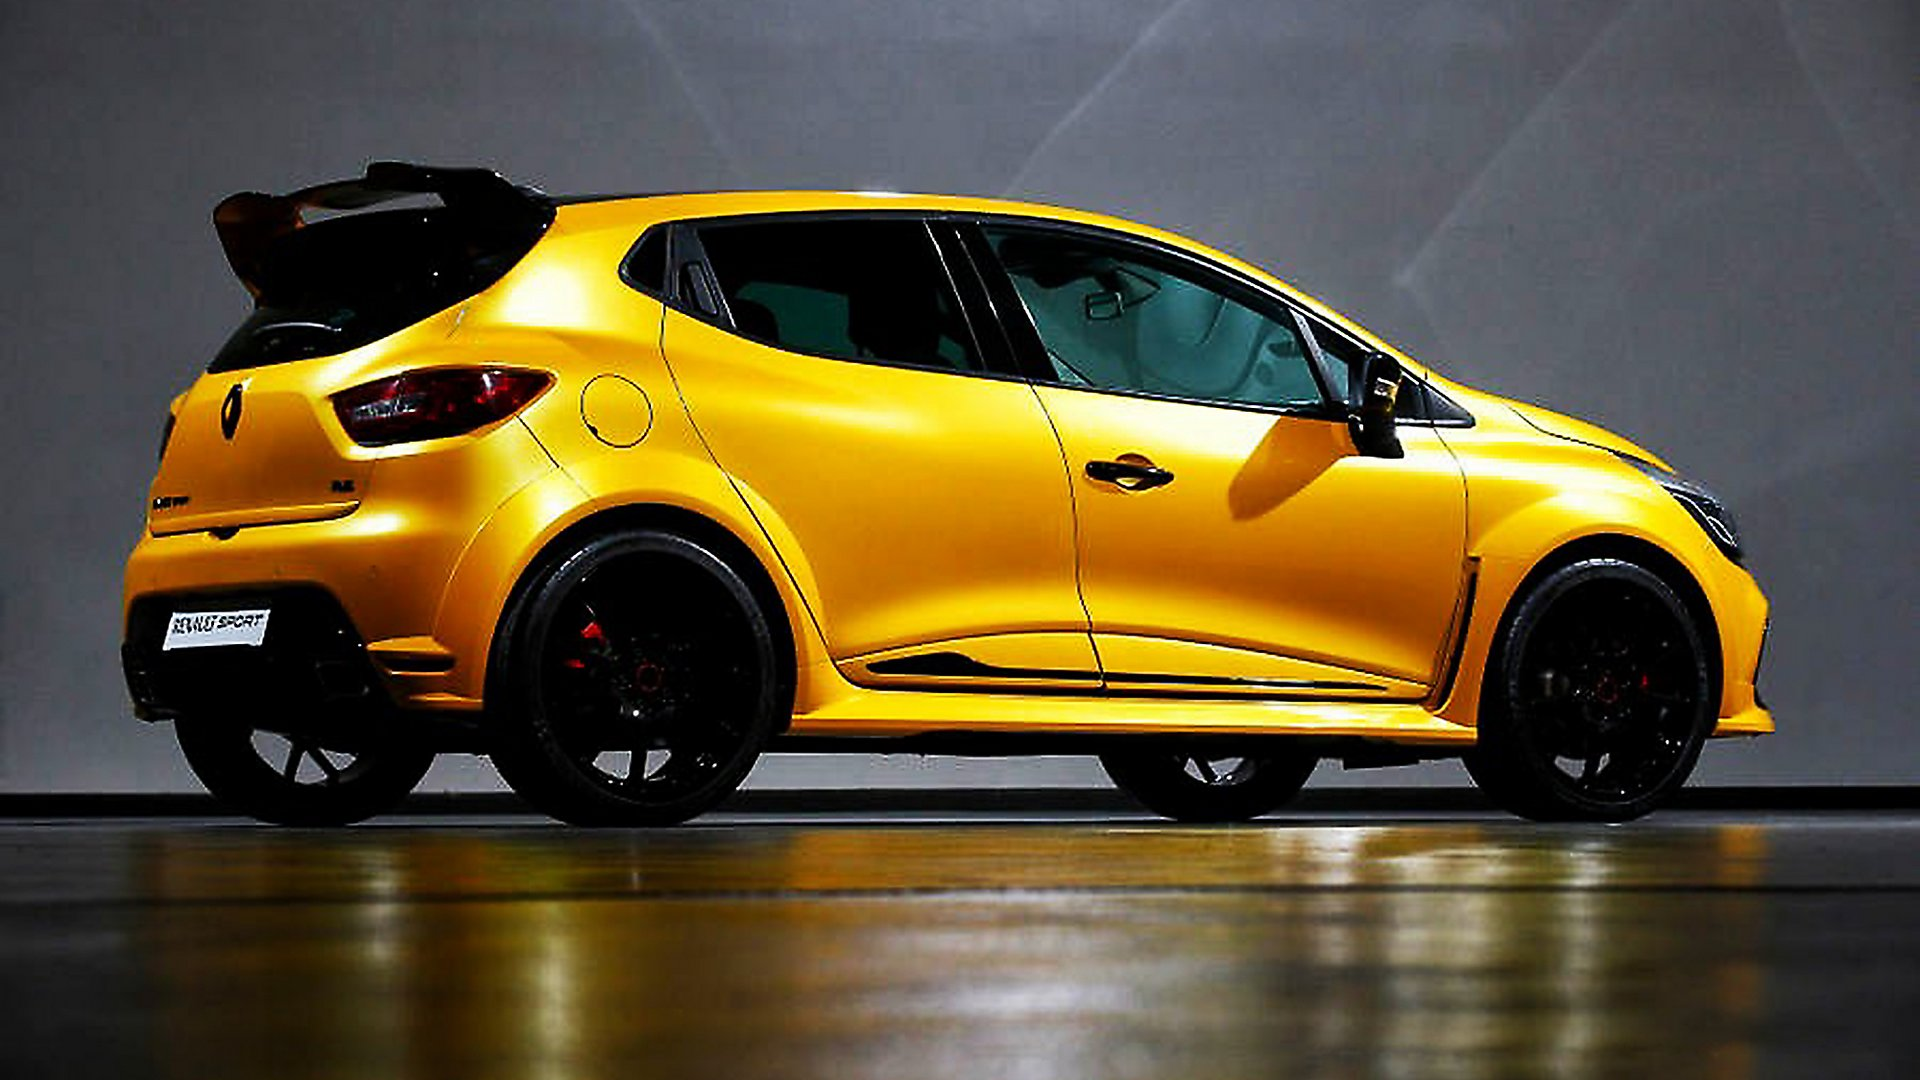 renault clio rs evo. Black Bedroom Furniture Sets. Home Design Ideas